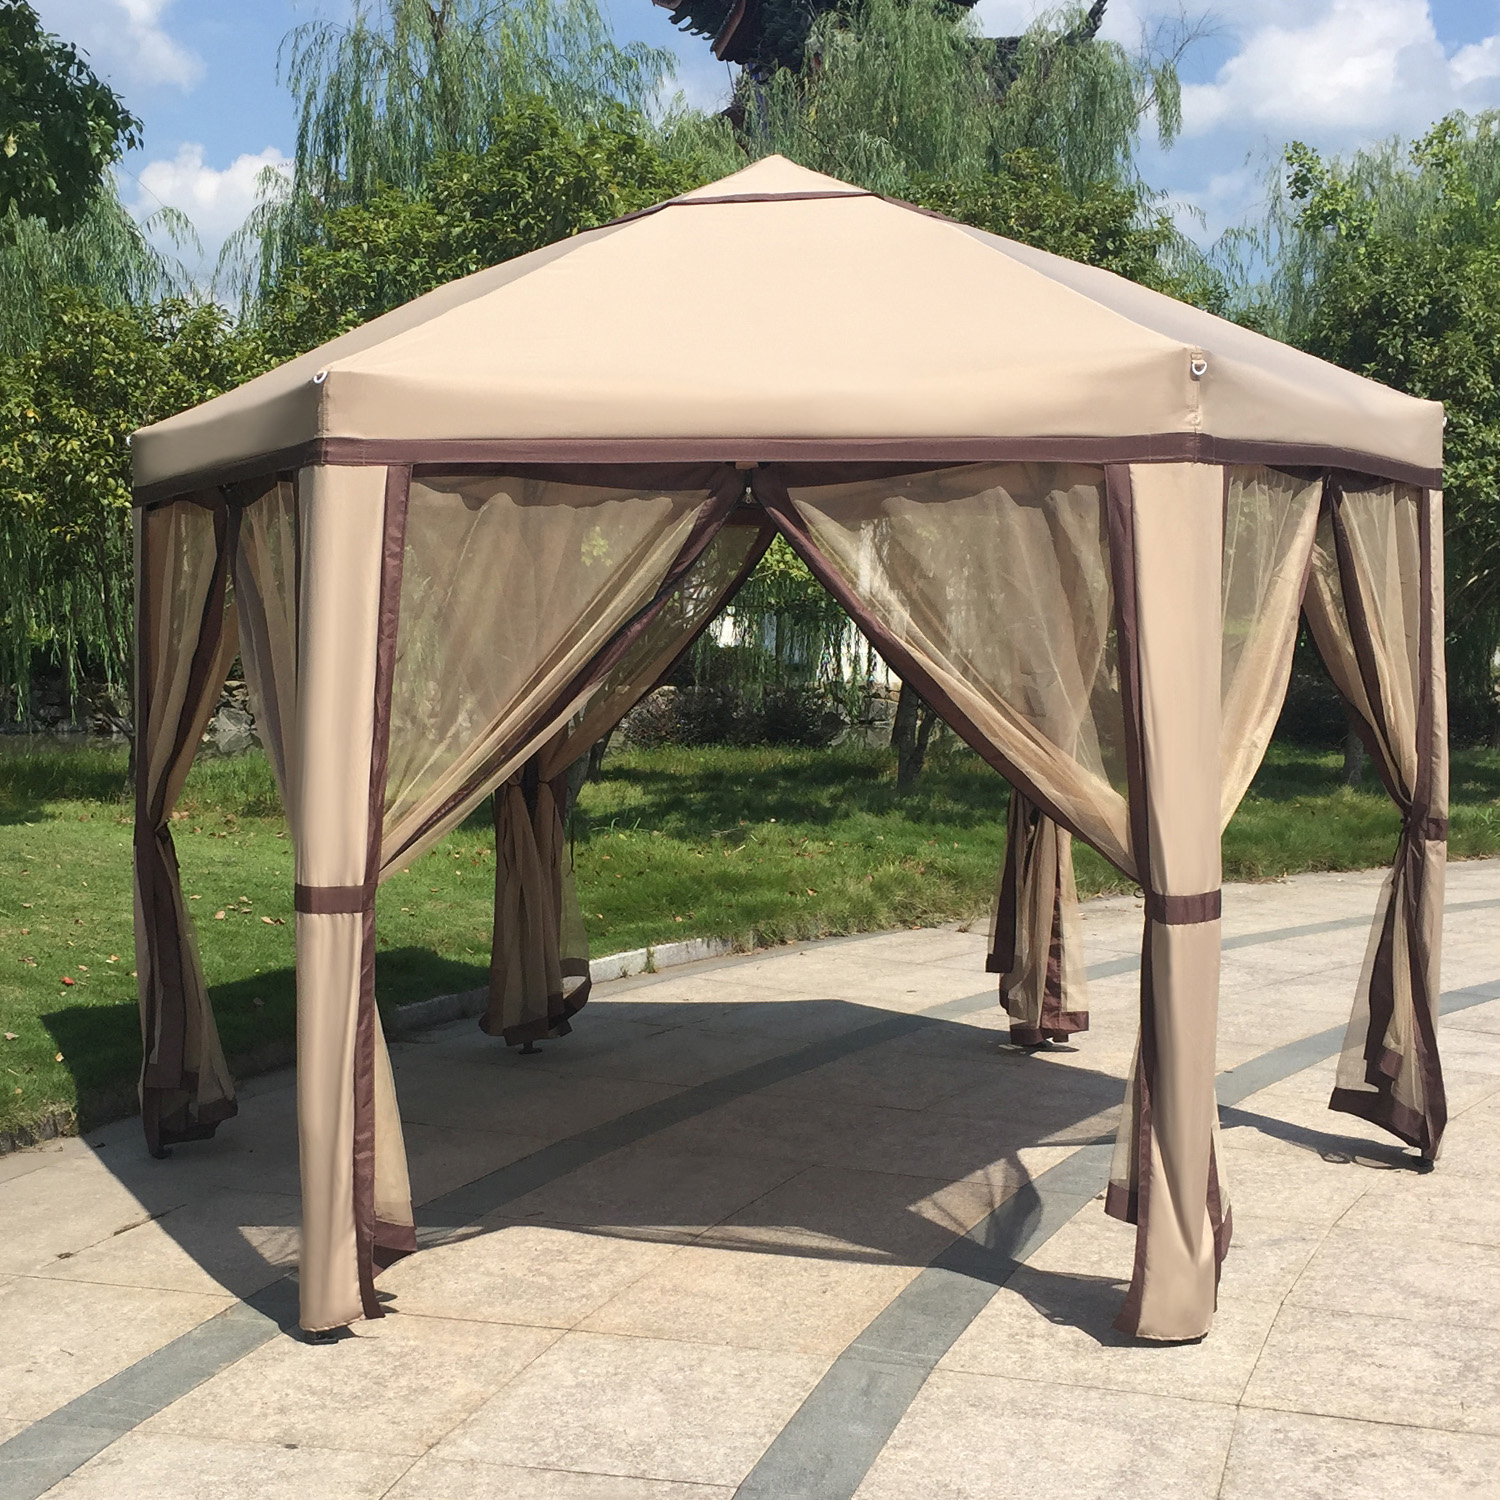 12 x 8 Elegant Garden Gazebo with Mosquito Netting Outdoor Patio